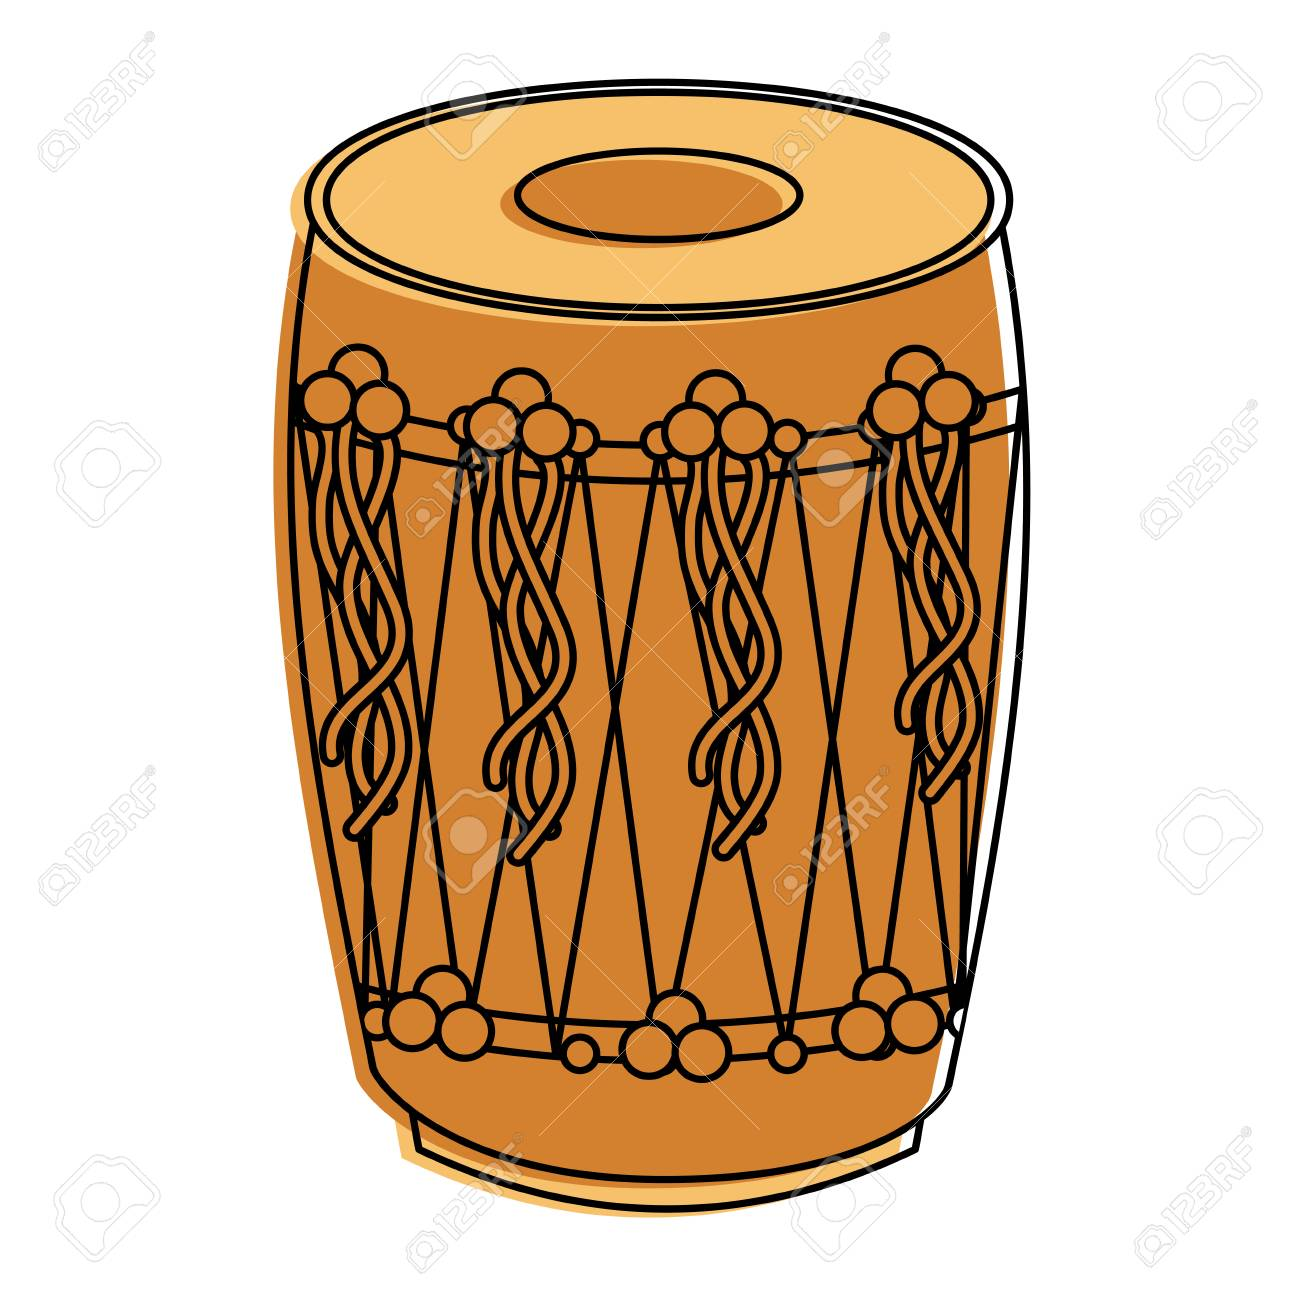 Musical Instrument Punjabi Drum Dhol Indian Traditional Vector.